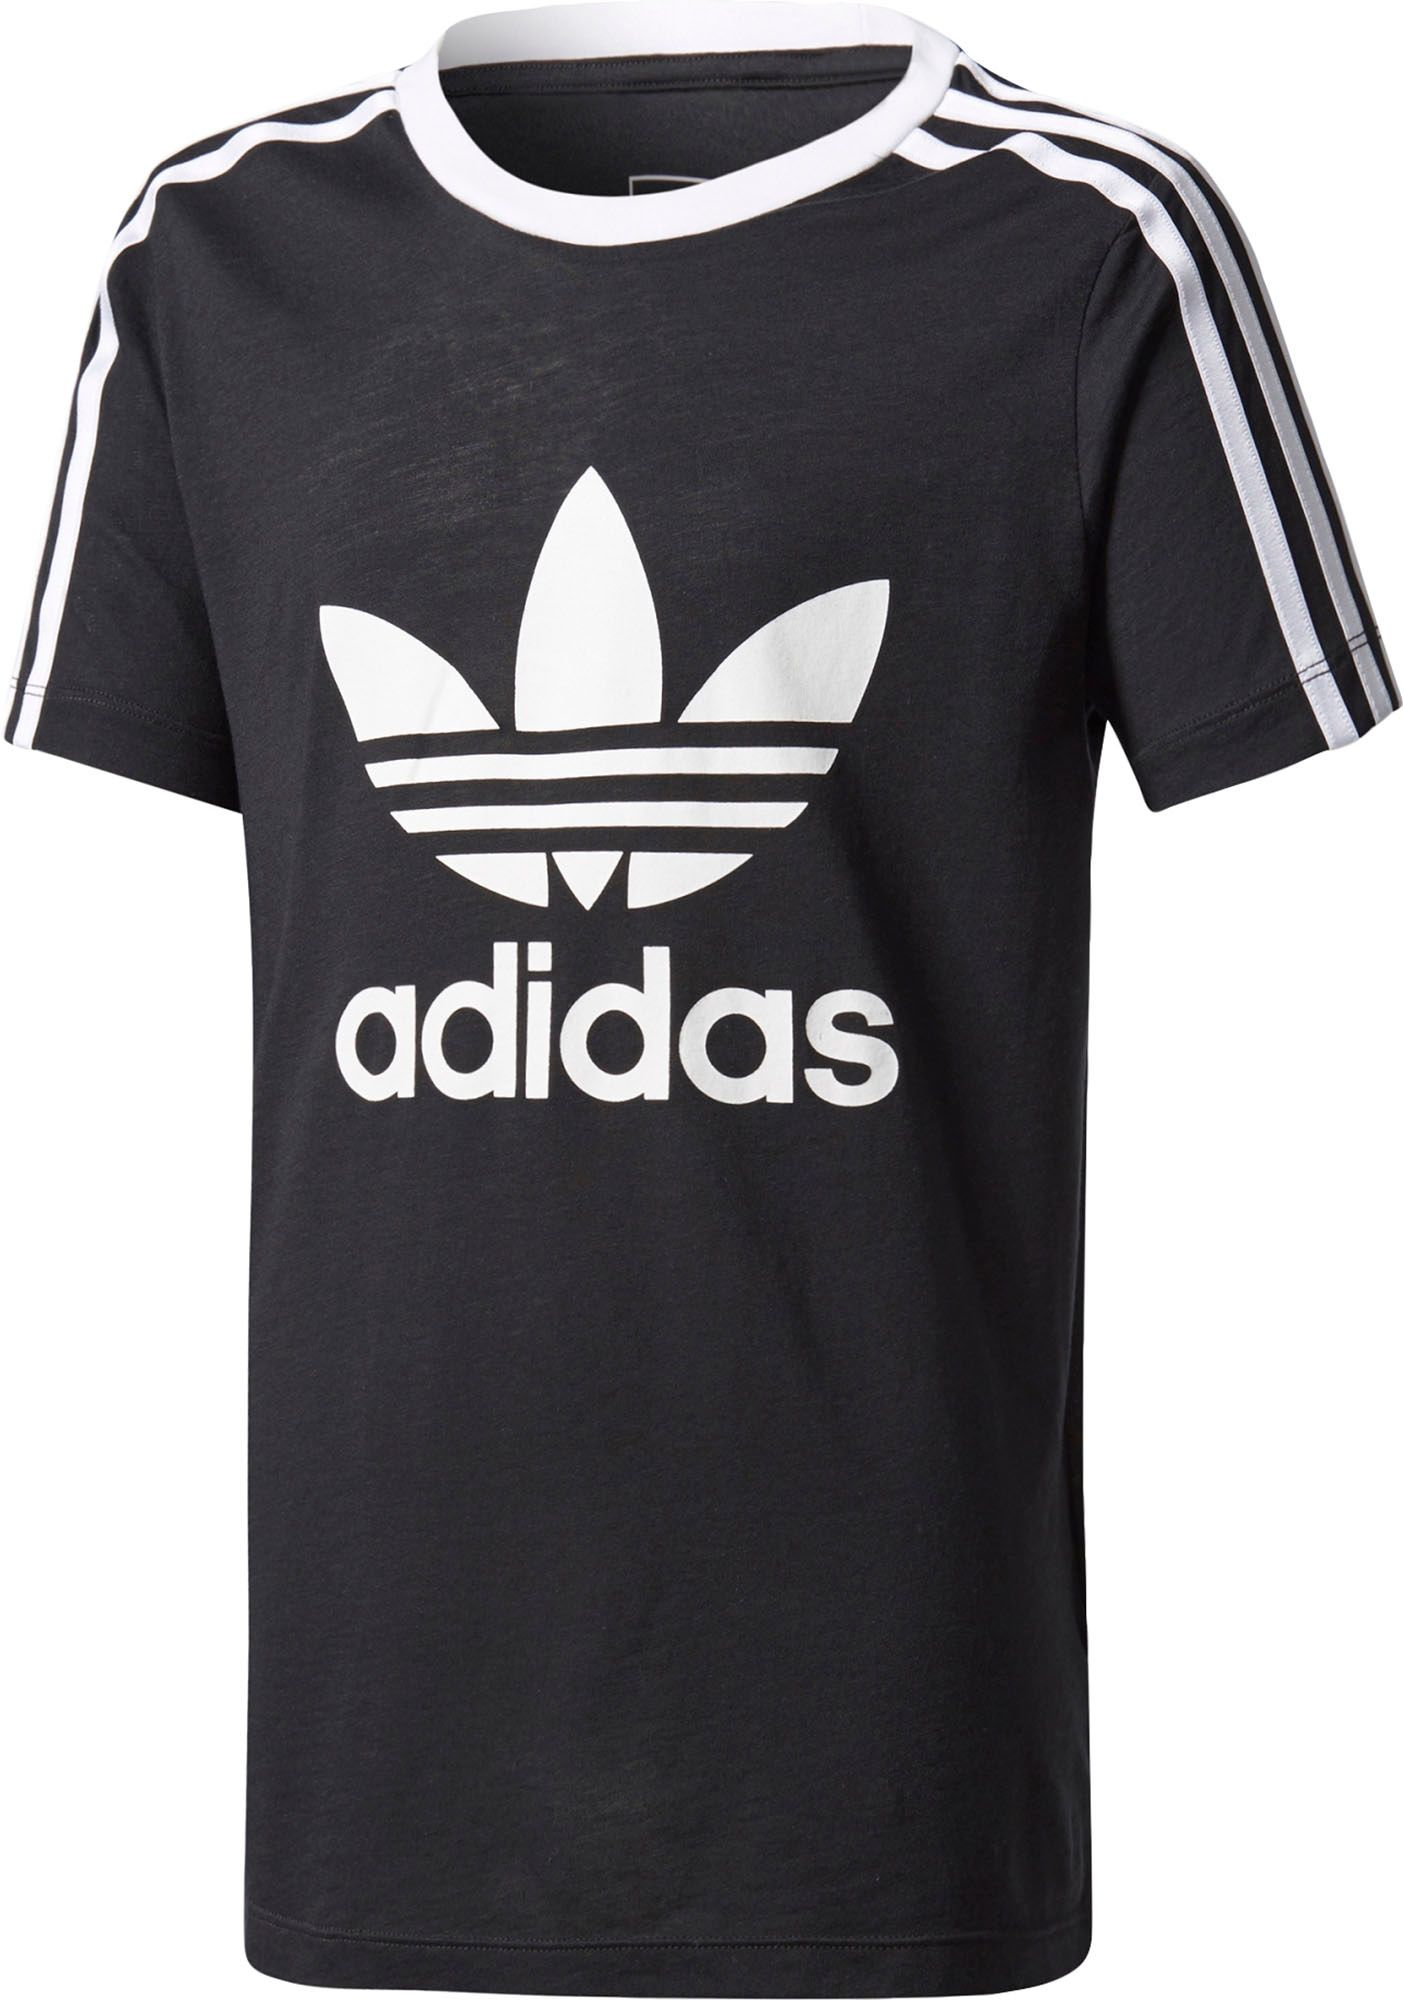 Black t shirt with white stripes - Adidas Originals Girls 3 Stripes Trefoil T Shirt